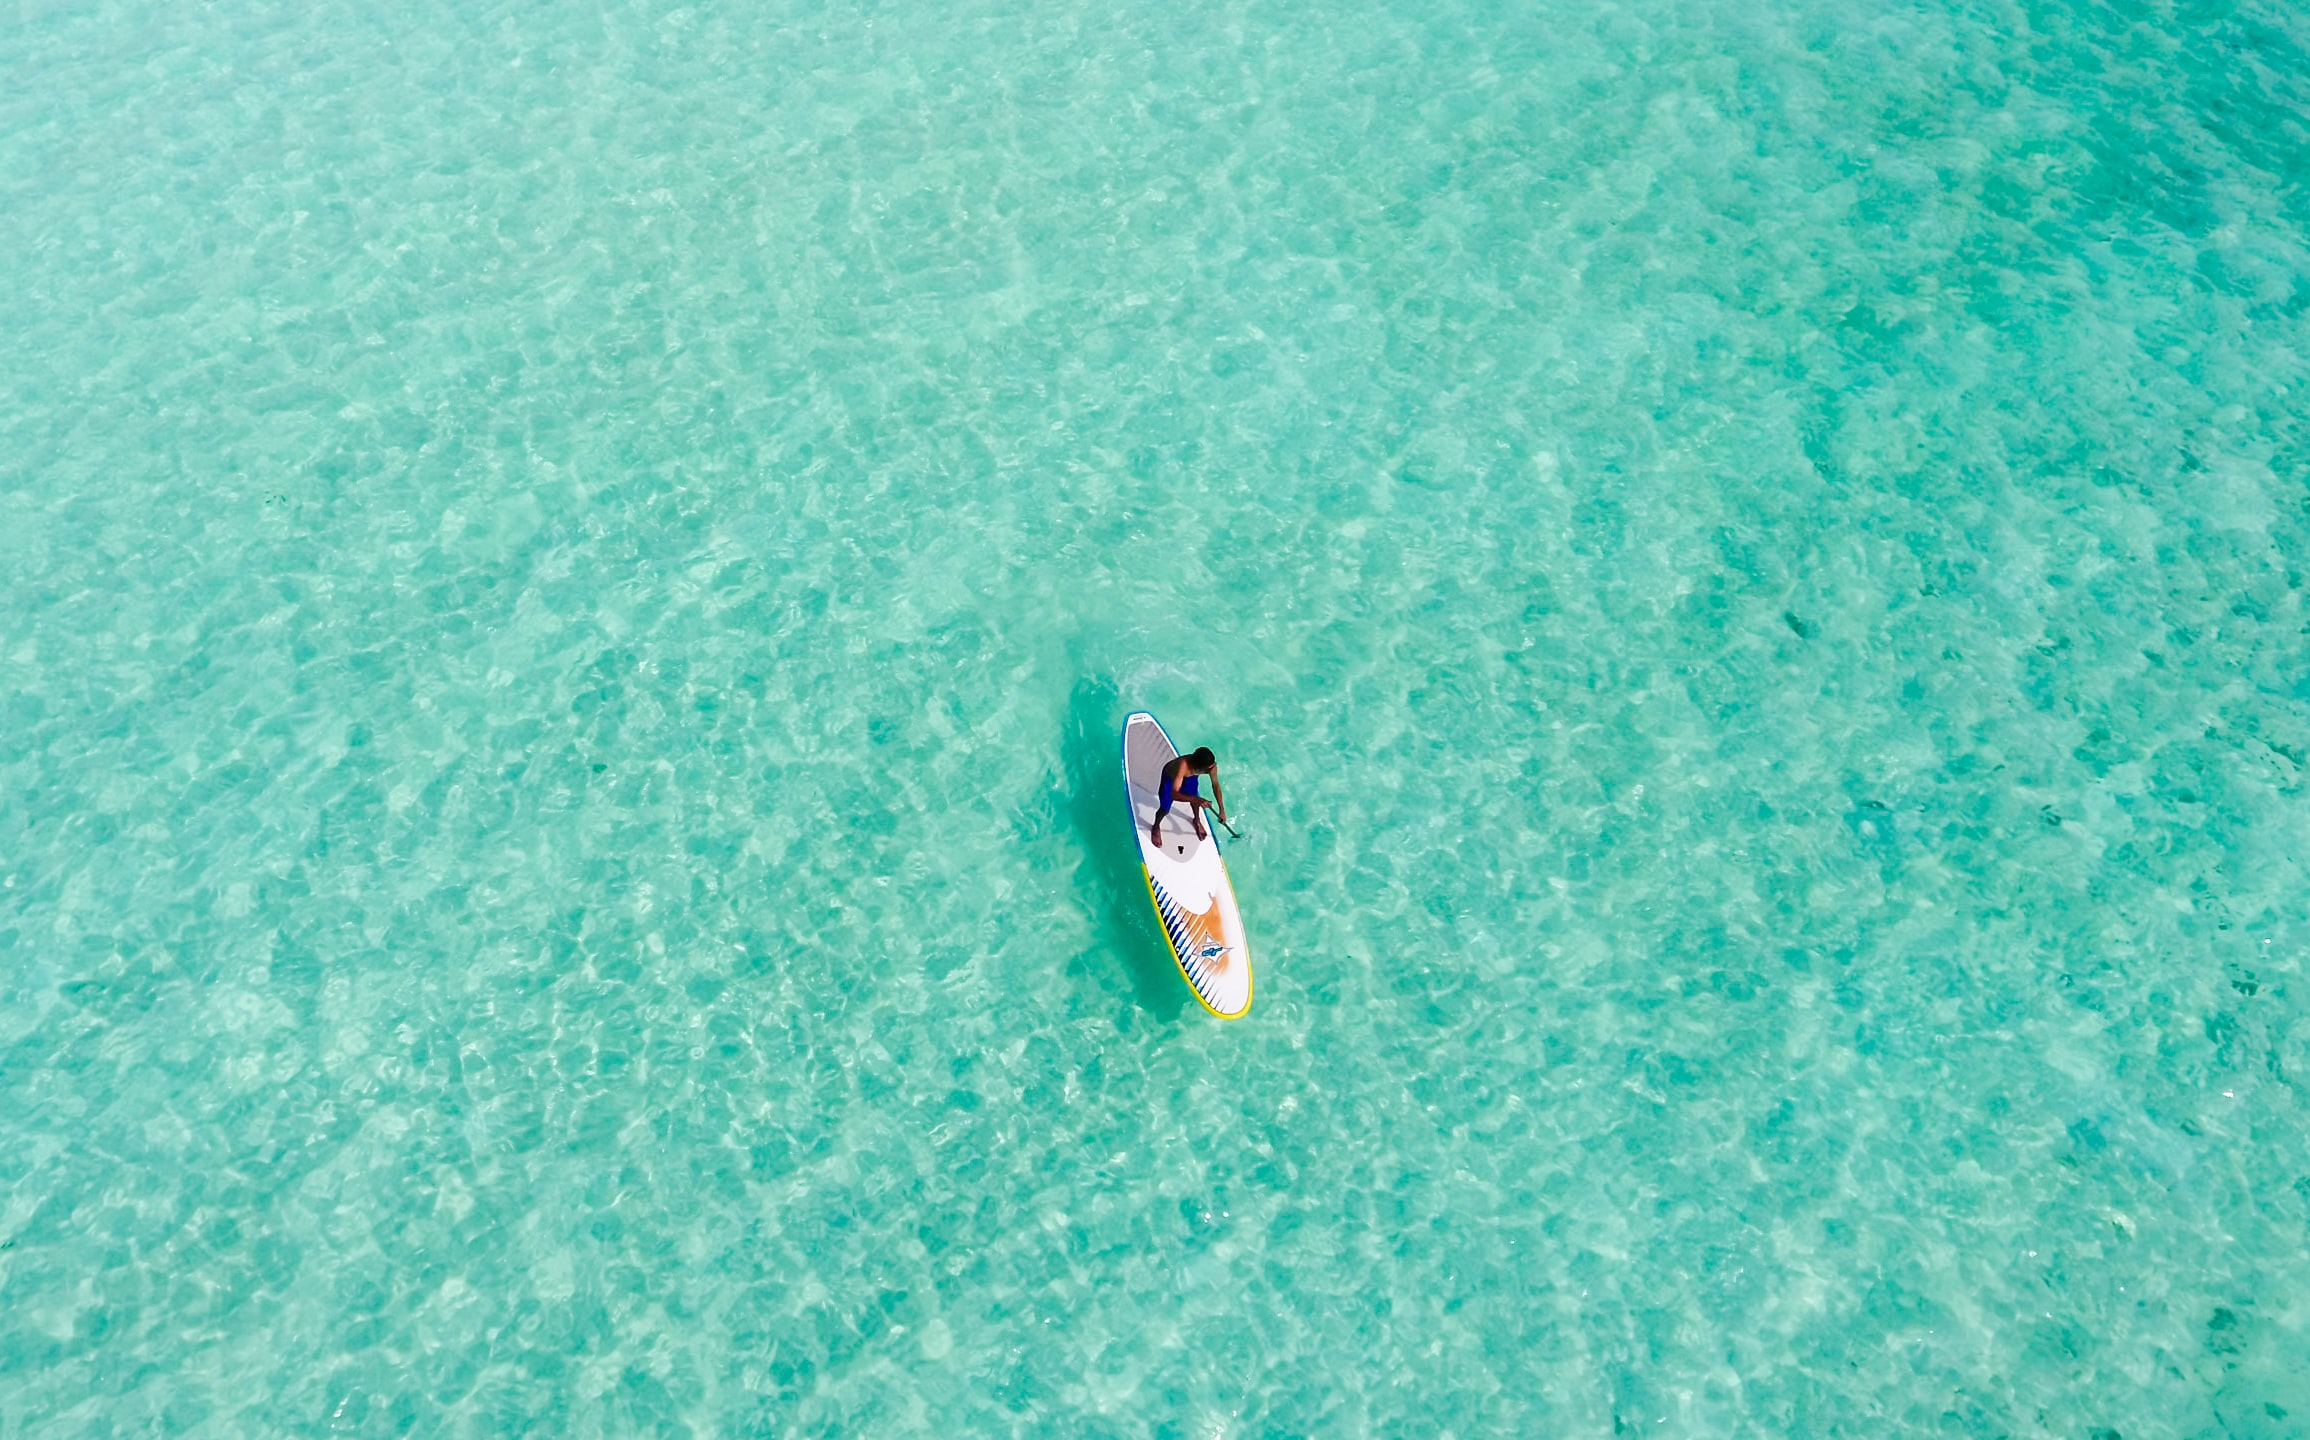 Drone view of a man standing on a paddleboard in the ocean